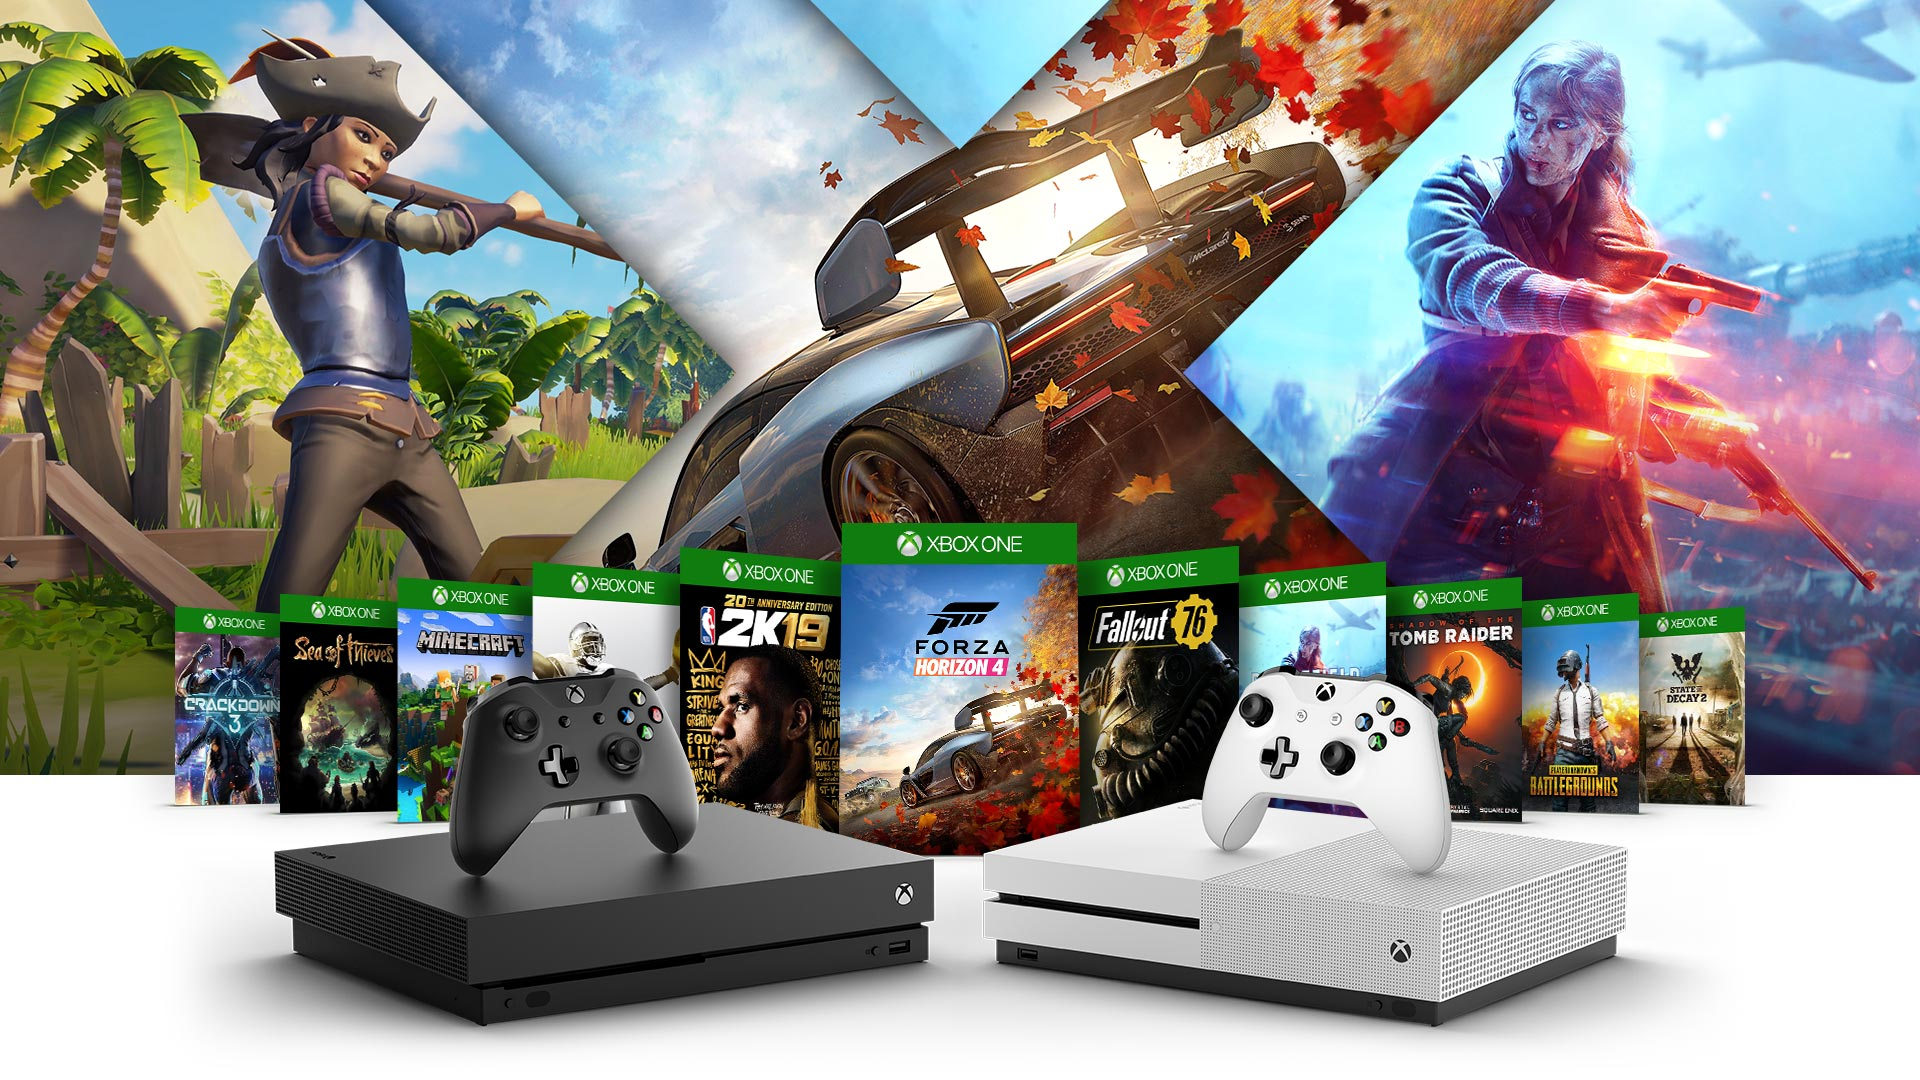 Side view of Xbox One X and Xbox One S surrounded by Crackdown 3, Sea of Thieves, Minecraft, Madden 19, 2K19, Forza Horizon 4, Fallout 76, Battlefield Five, Shadow of the Tomb Raider, PlayUnknown Battlegrounds and State of Decay 2 box shots